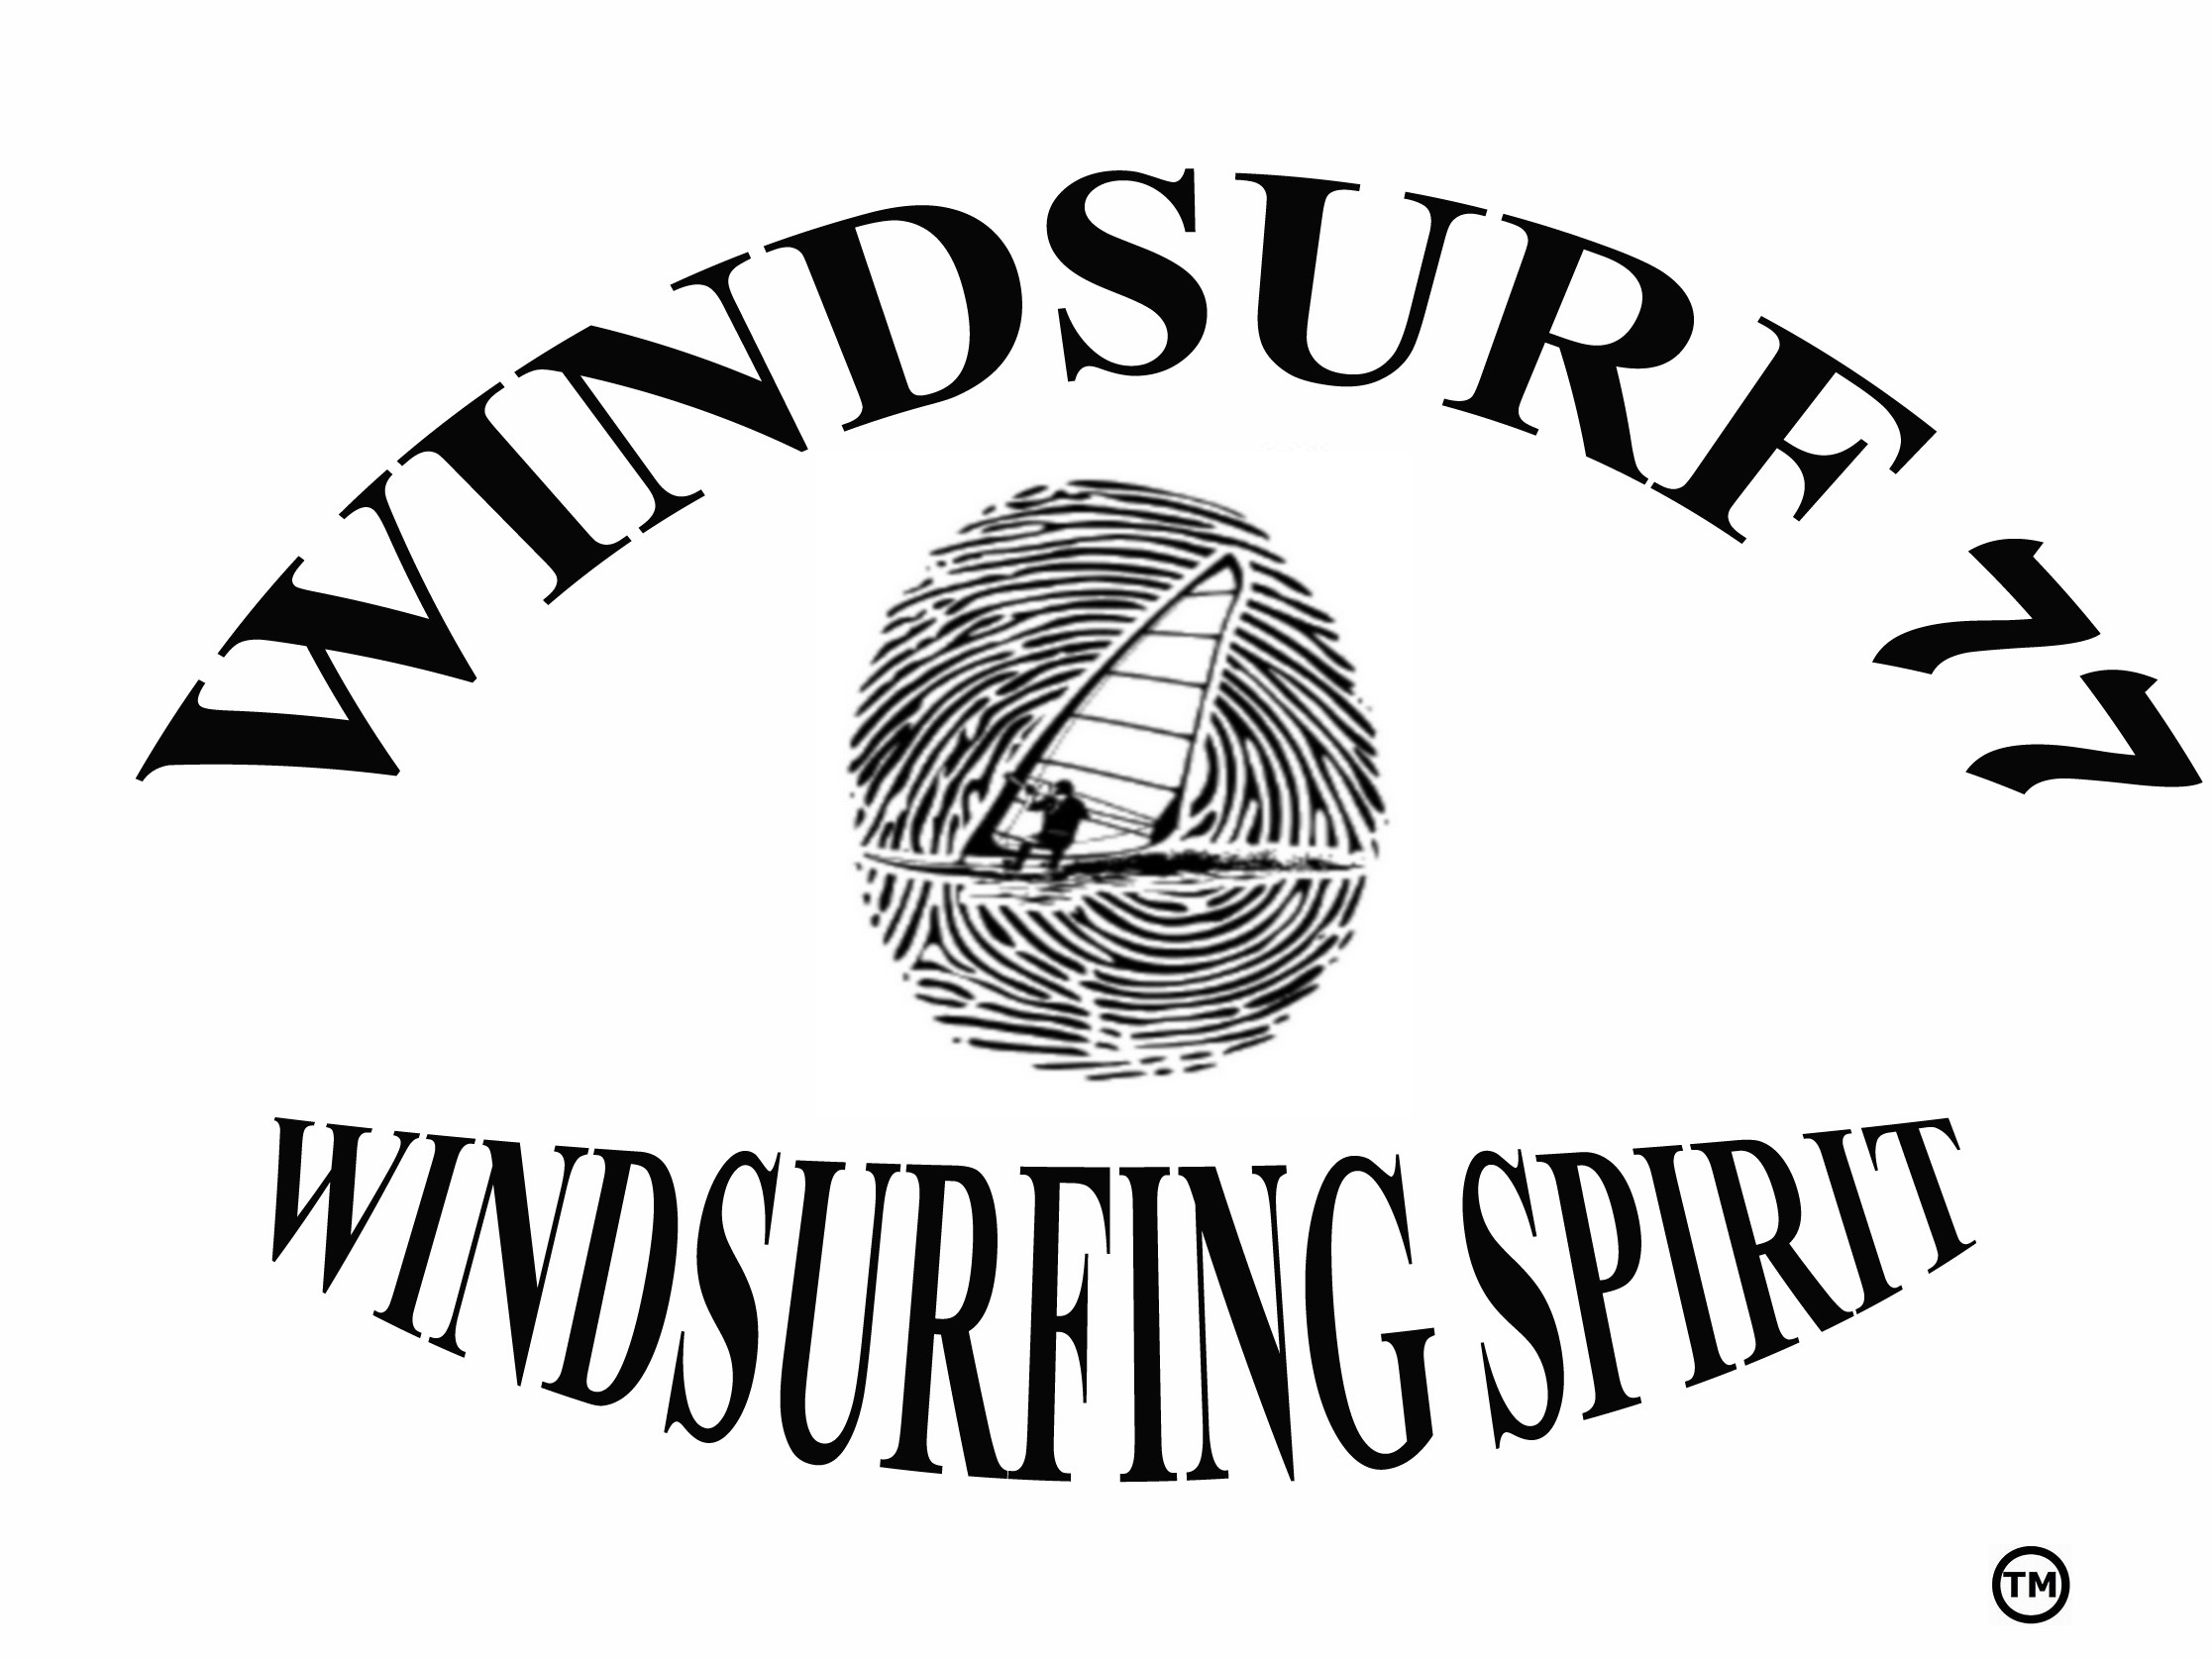 LOGO WINDSURF 77 NOIR NEW.jpg